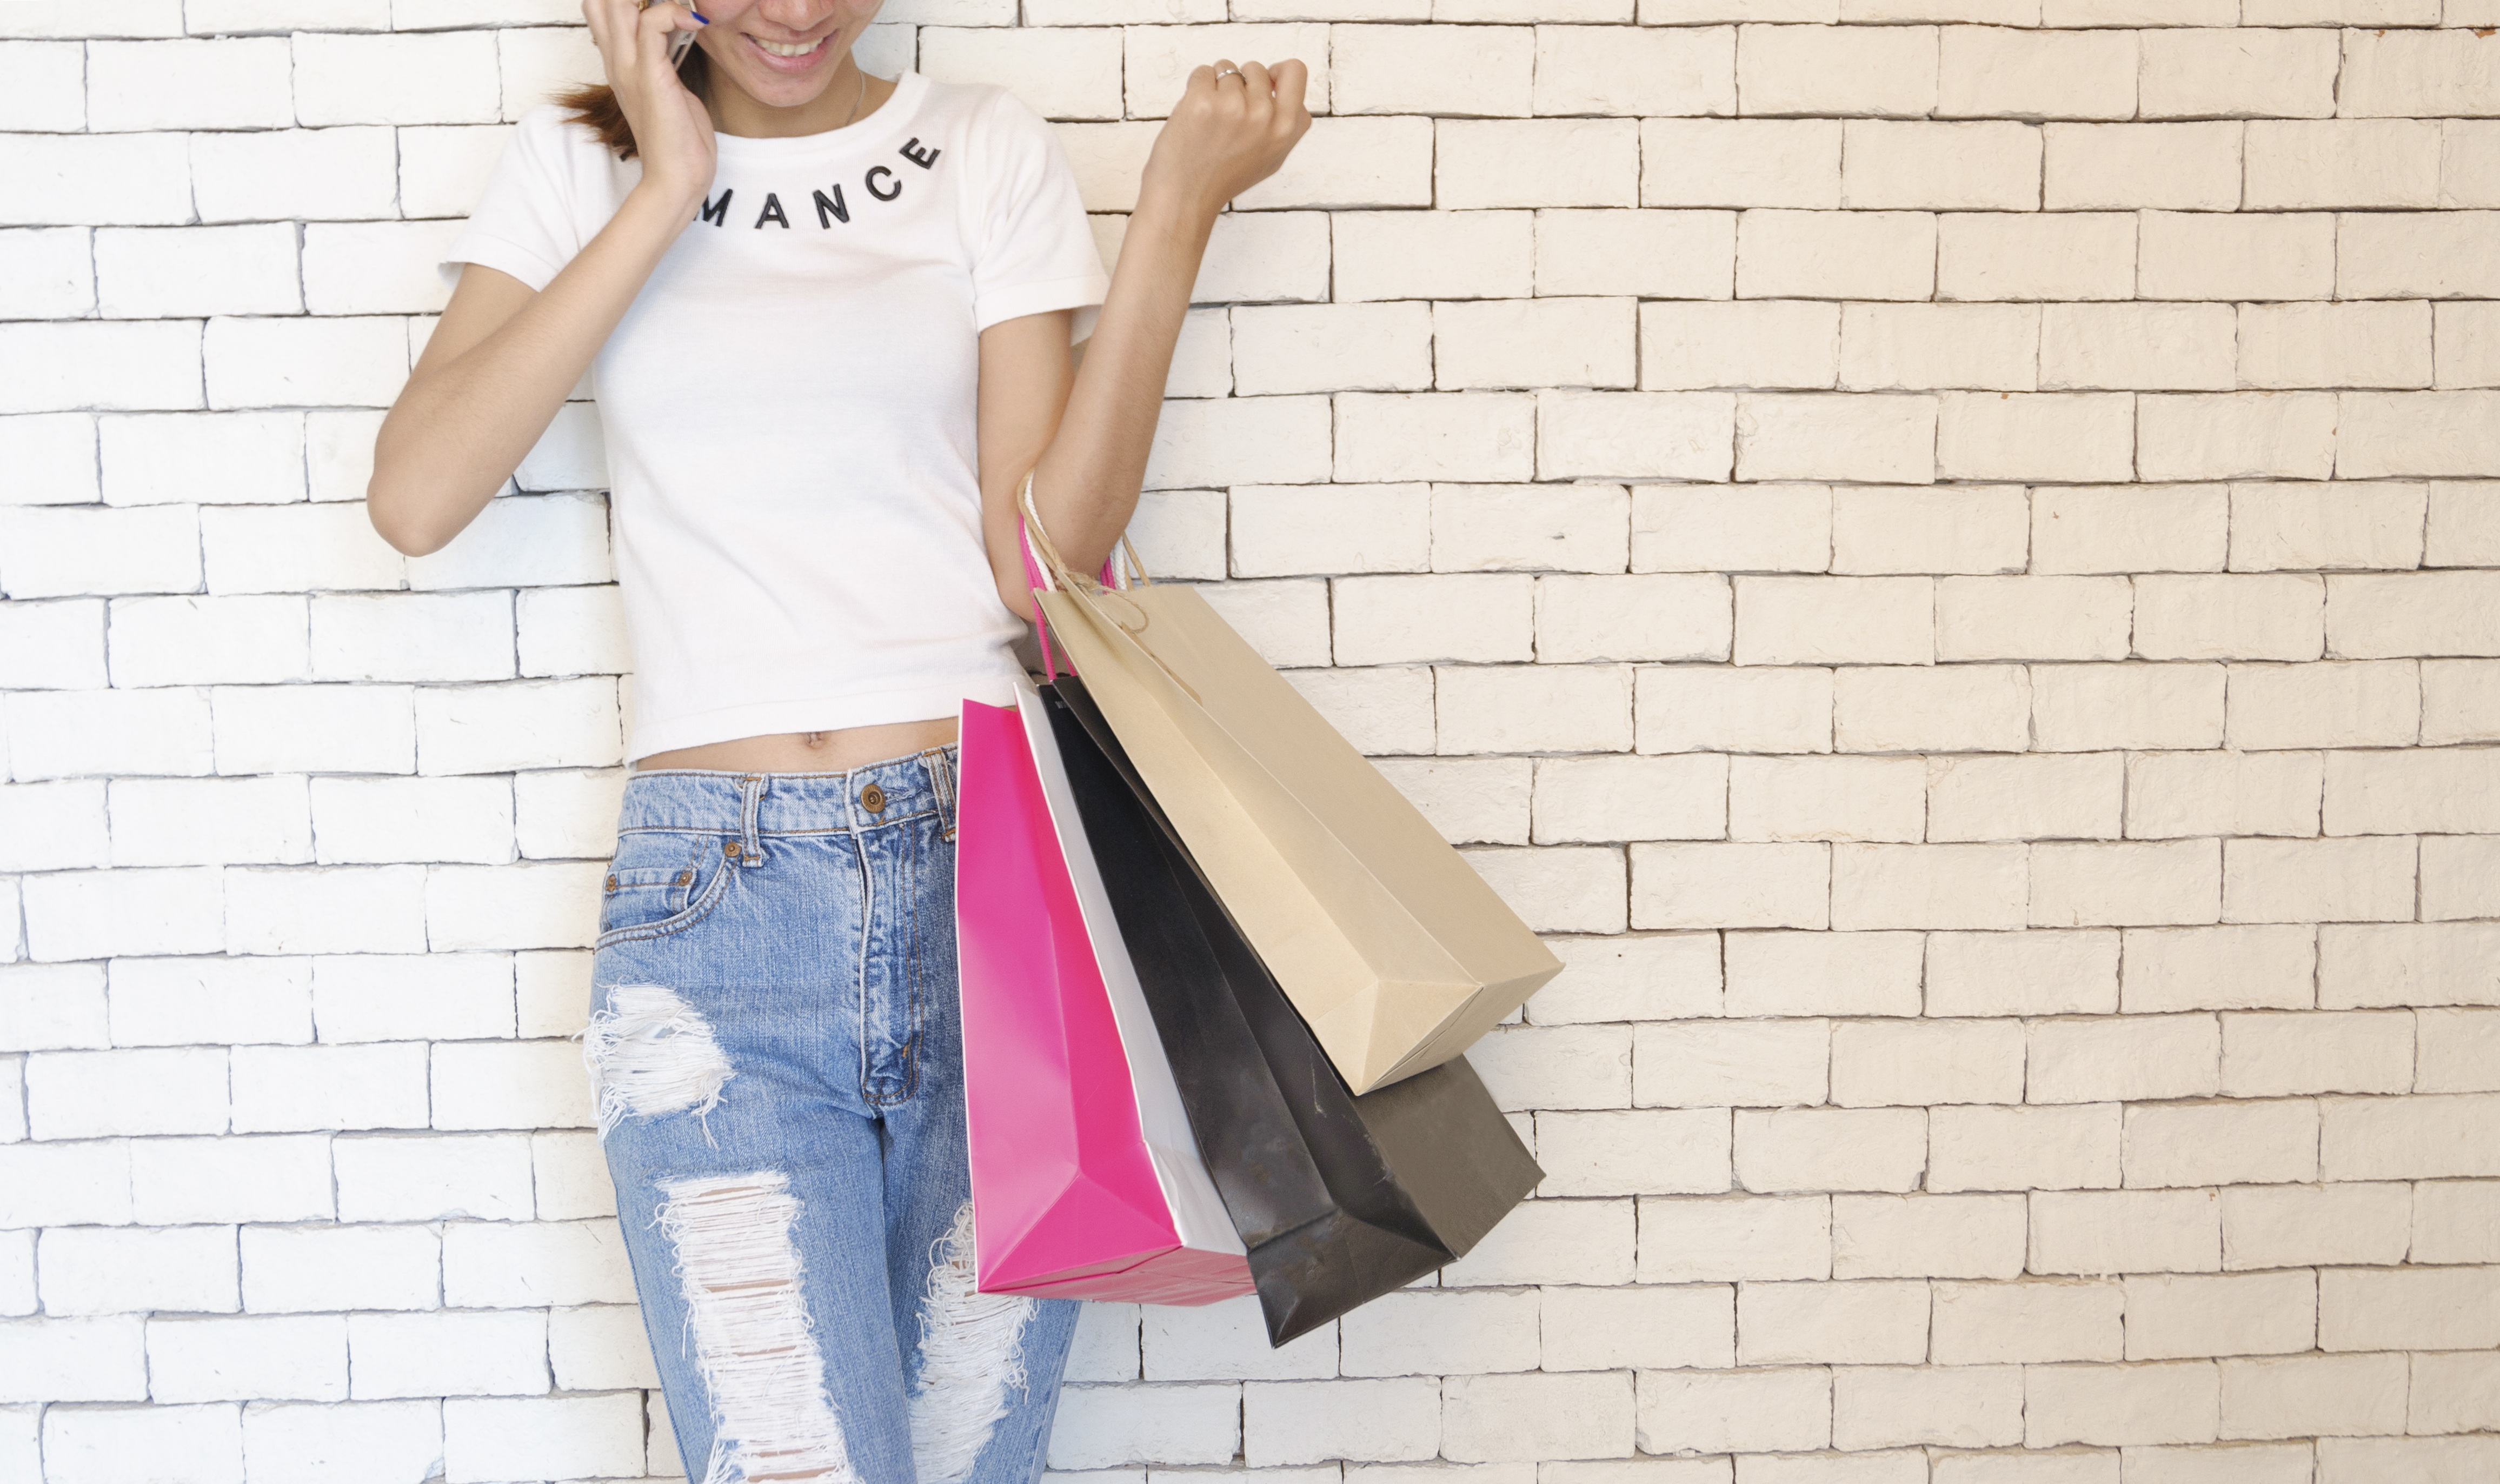 image oh women with shopping